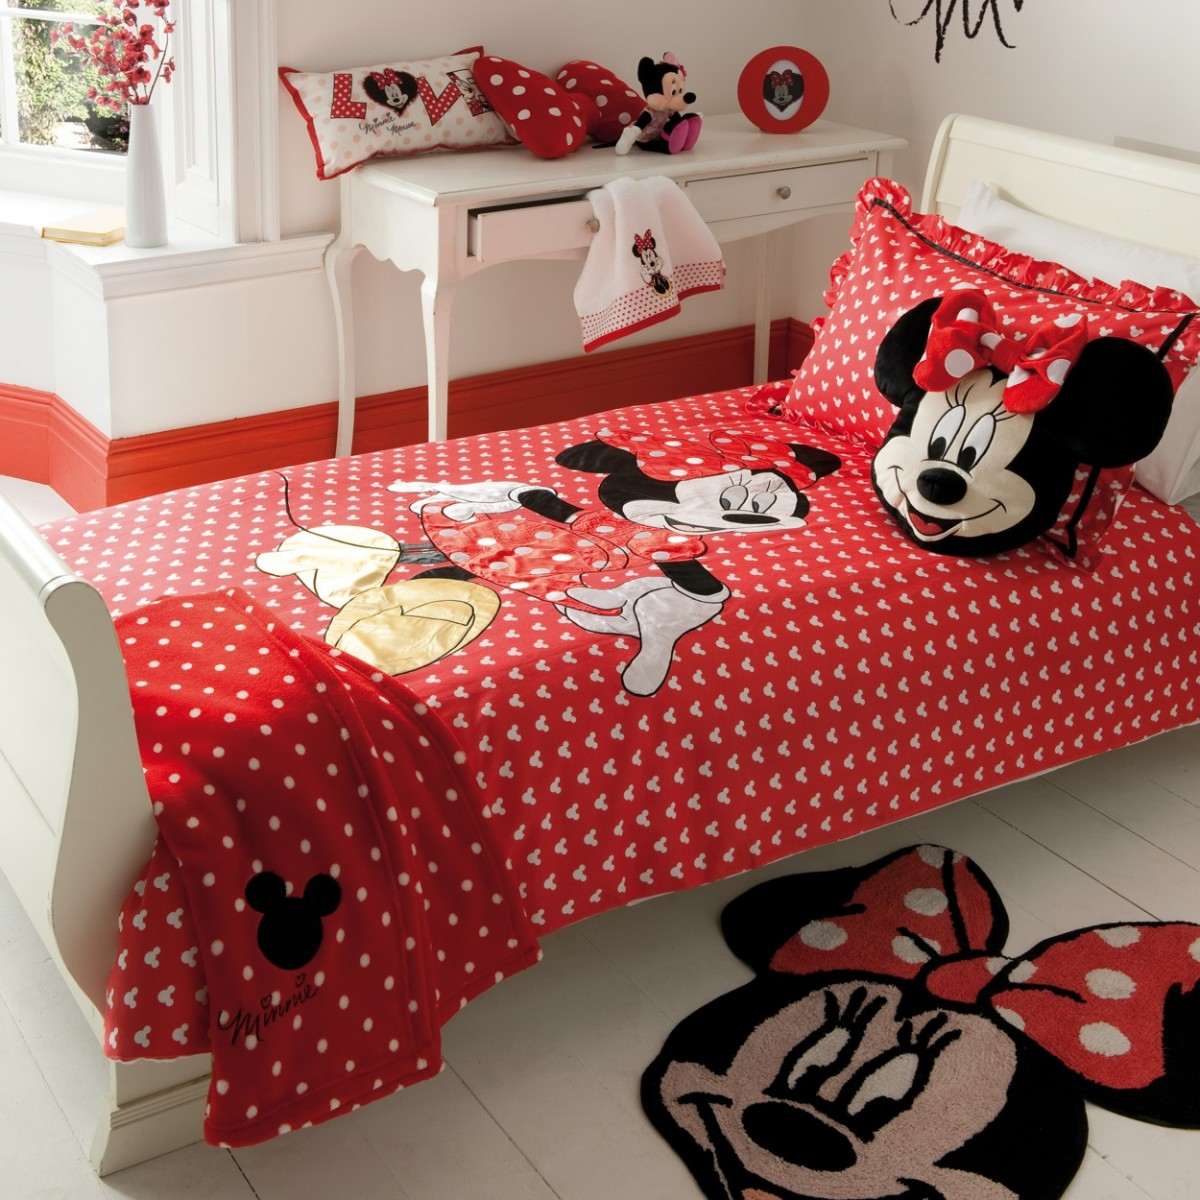 Minnie Mouse Wall Decor | Minnie Mouse Wall Light | Wall Decals Minnie Mouse